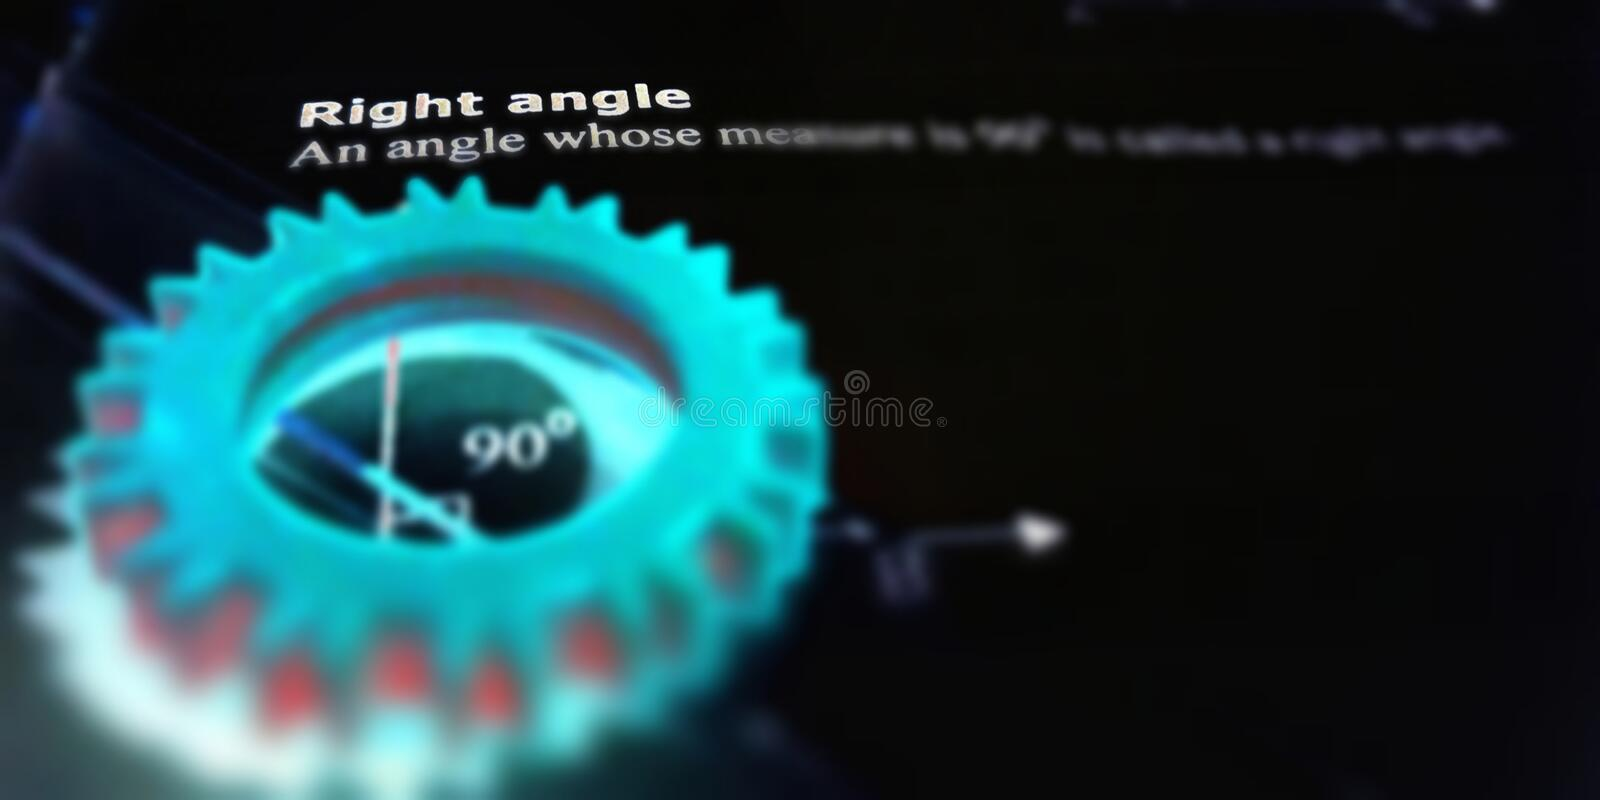 Right angle 90 degree pattern presentation on black background royalty free stock image